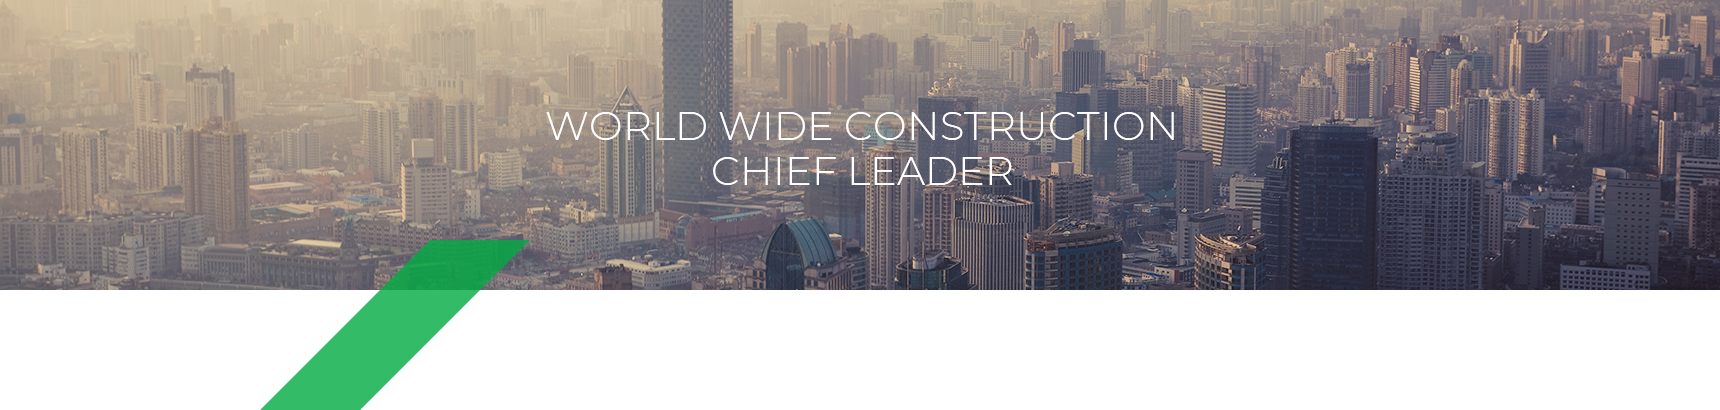 WORLD WIDE CONSTRUCTION CHIEF LEADER